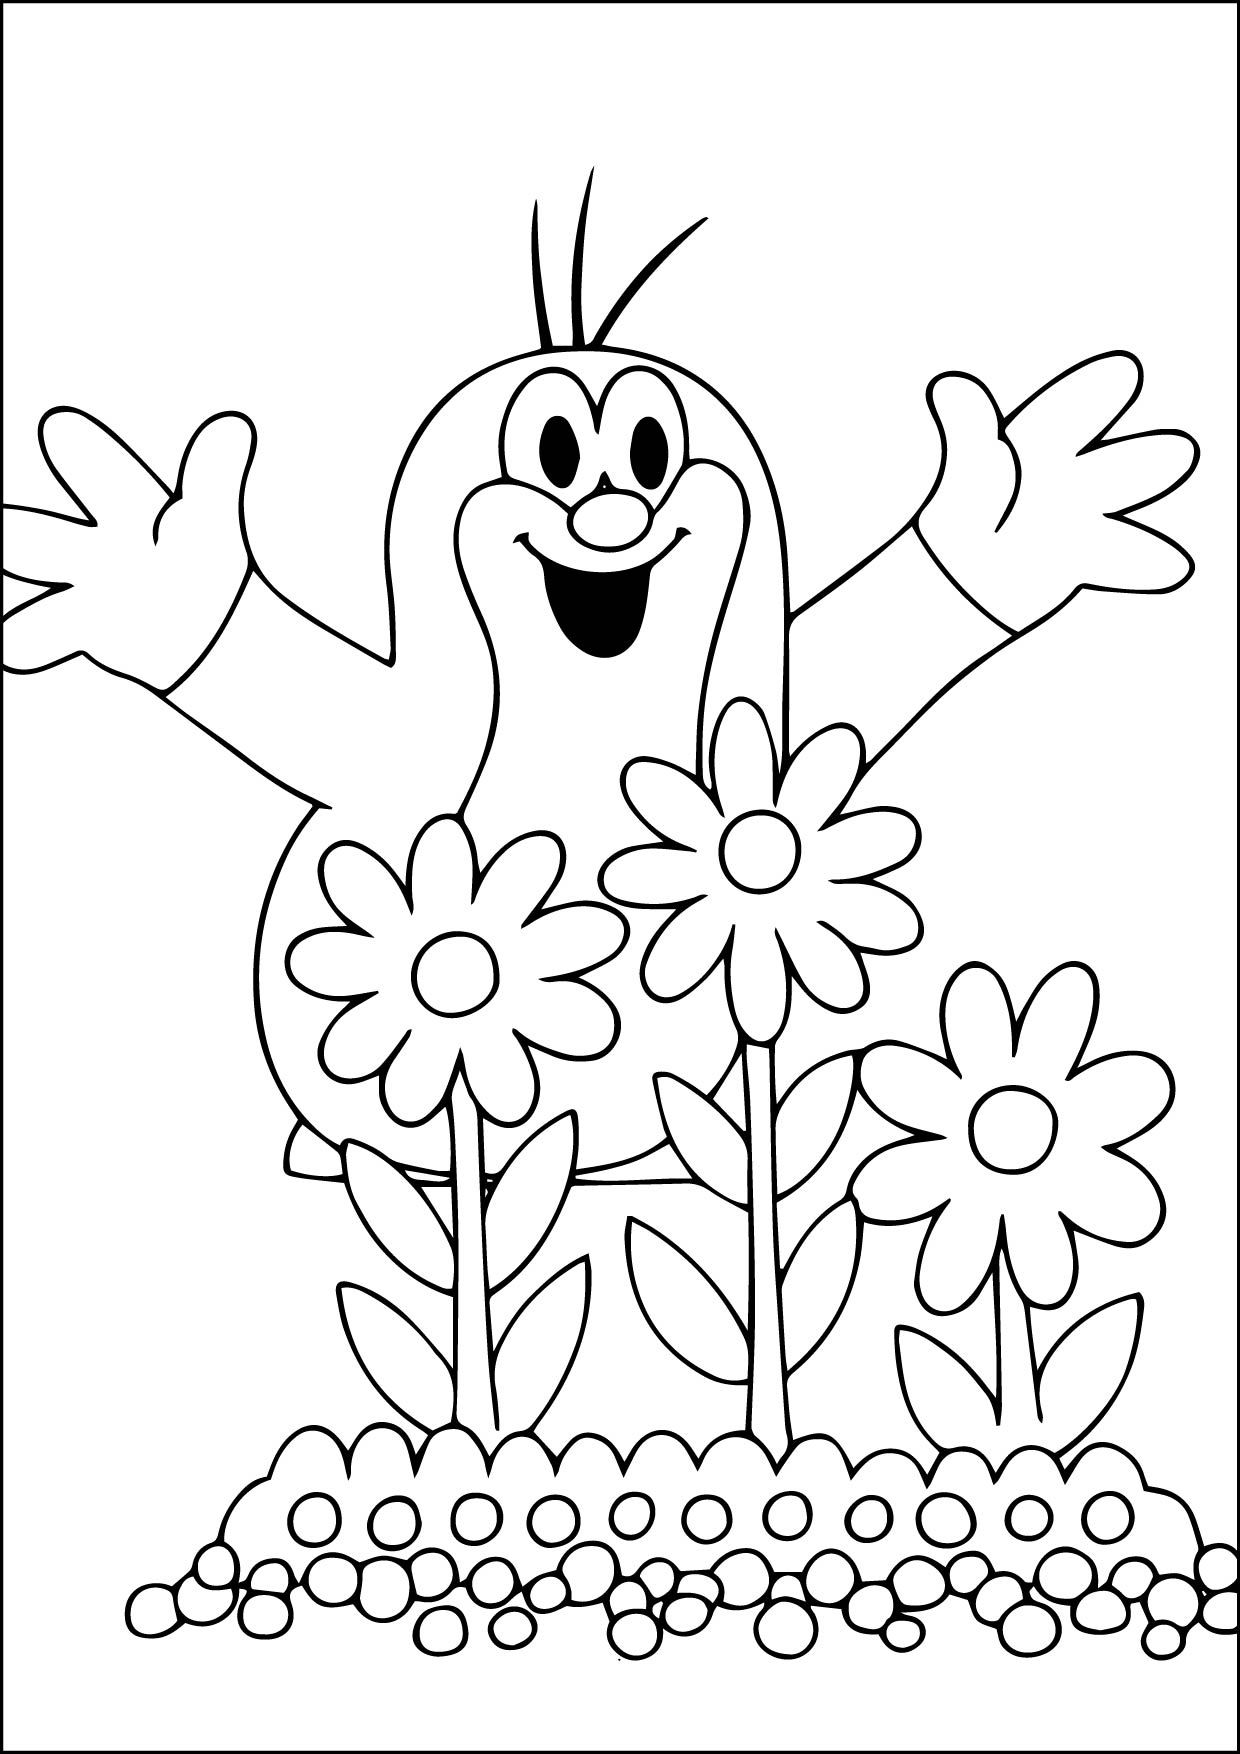 Awesome Coloring Page 10 10 2015 181904 01 Check More At Http Www Mcoloring Com Index Php 2015 10 13 Coloring Coloring Pictures Coloring Pages Coloring Books